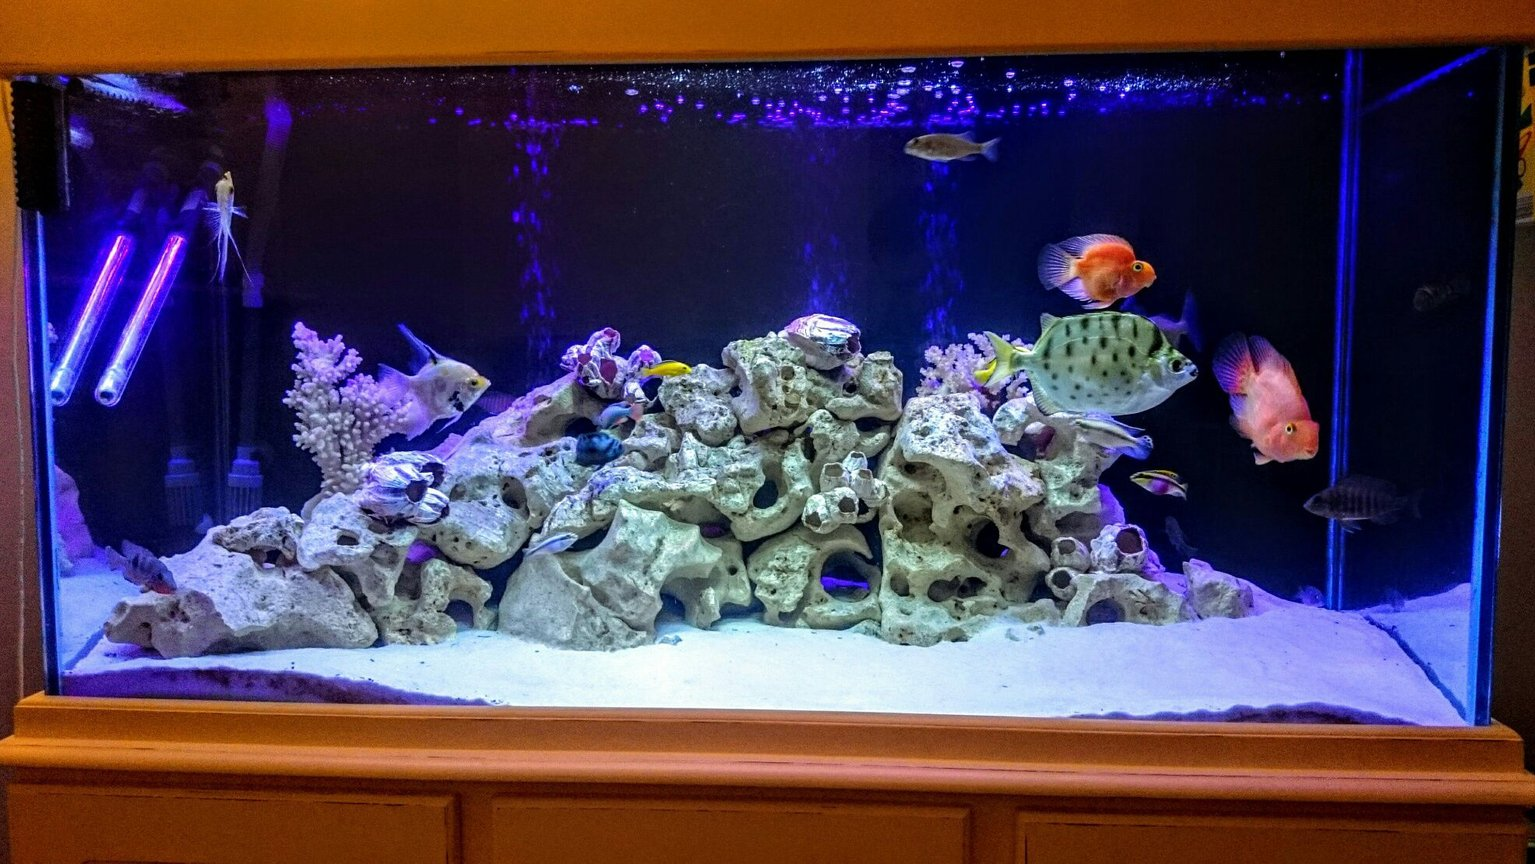 fish tank picture - Lighting effects